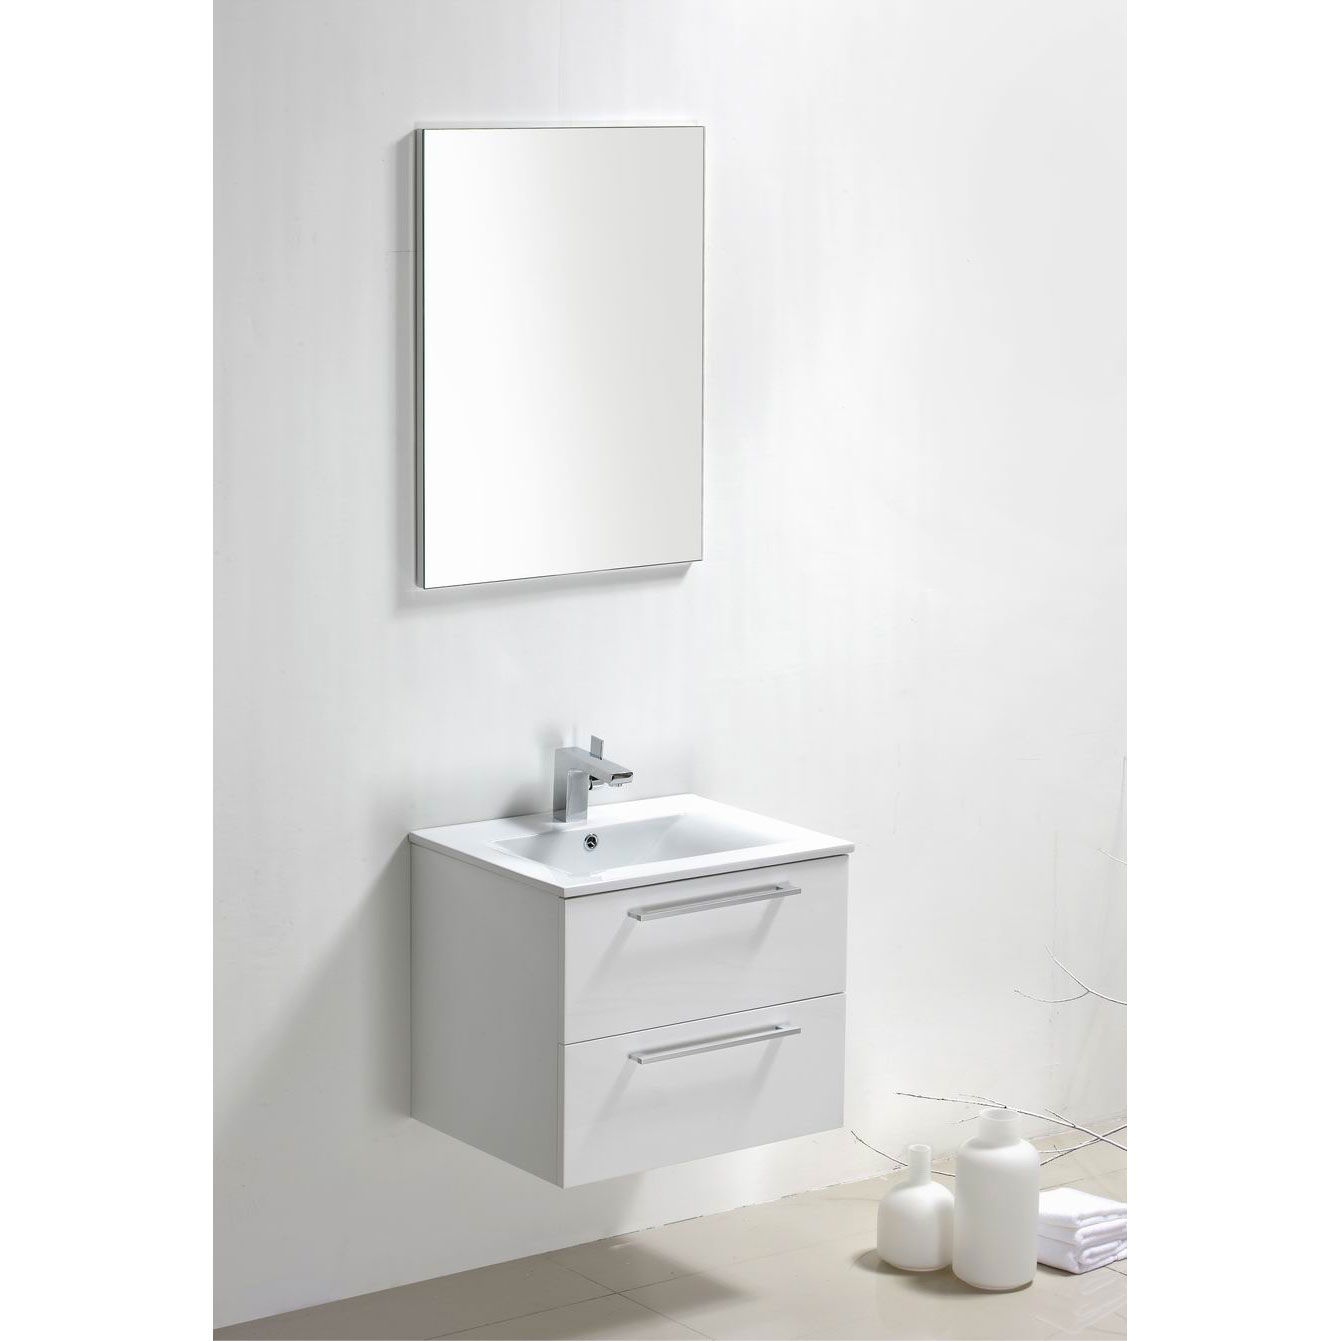 24 Inch Bathroom Vanity And Sink buy modern bathroom vanity cabinets free shipping on conceptbaths